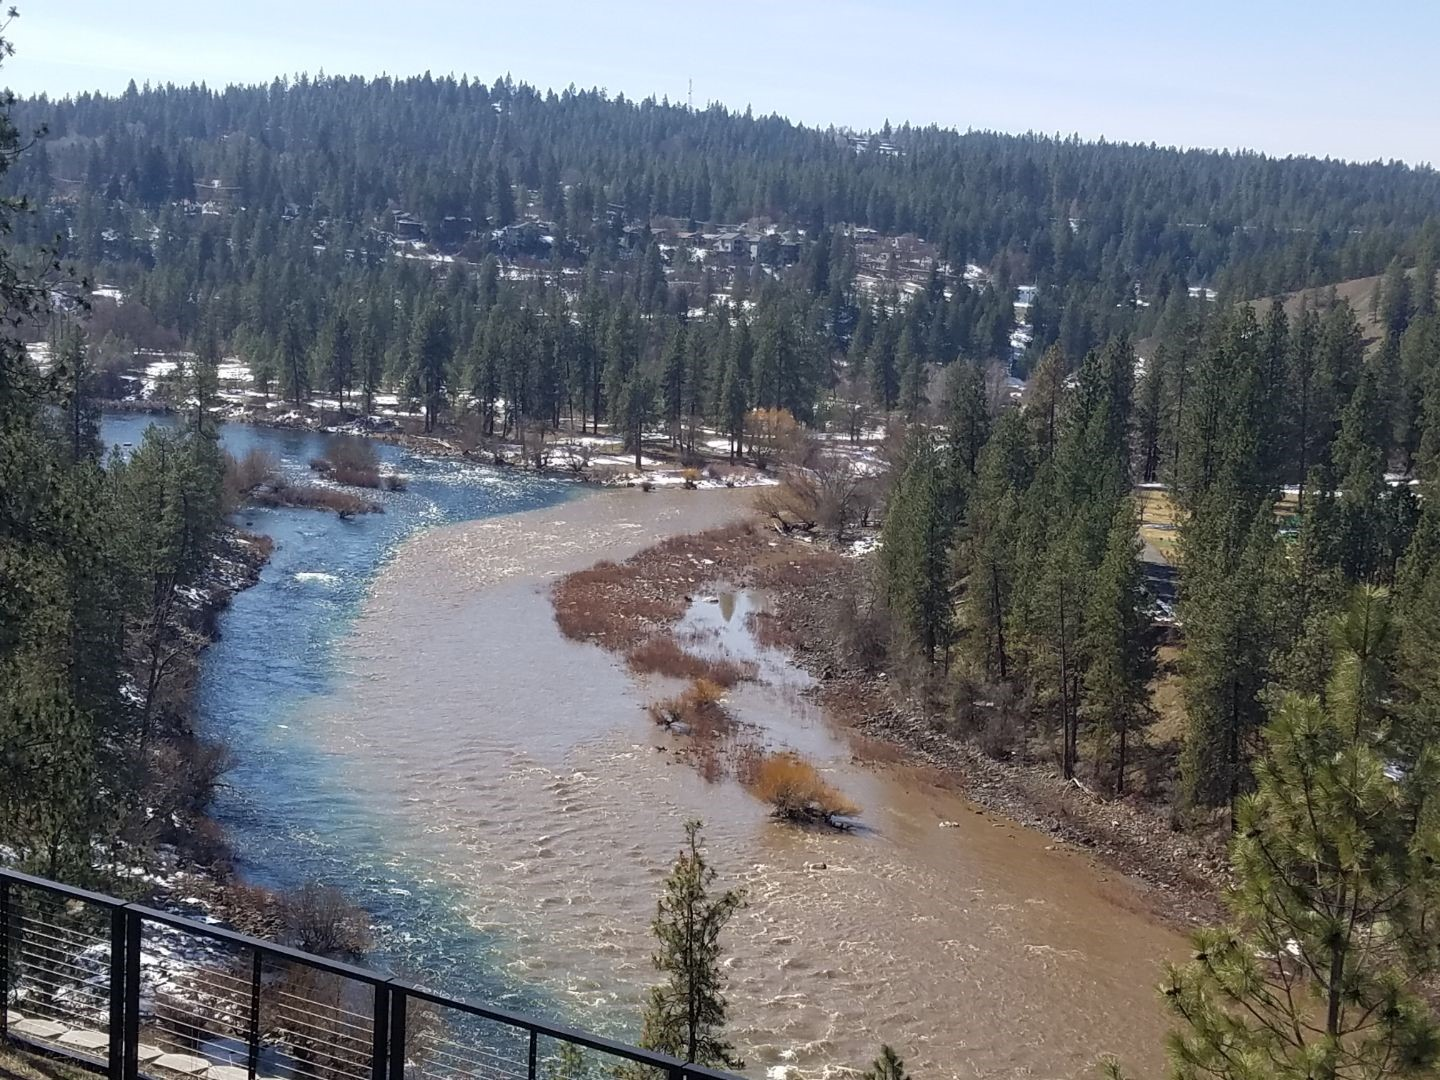 Hangman Creek pollutes the Spokane River with tons of sediment each day in the spring, choking sensitive native redband trout and burying their nests.